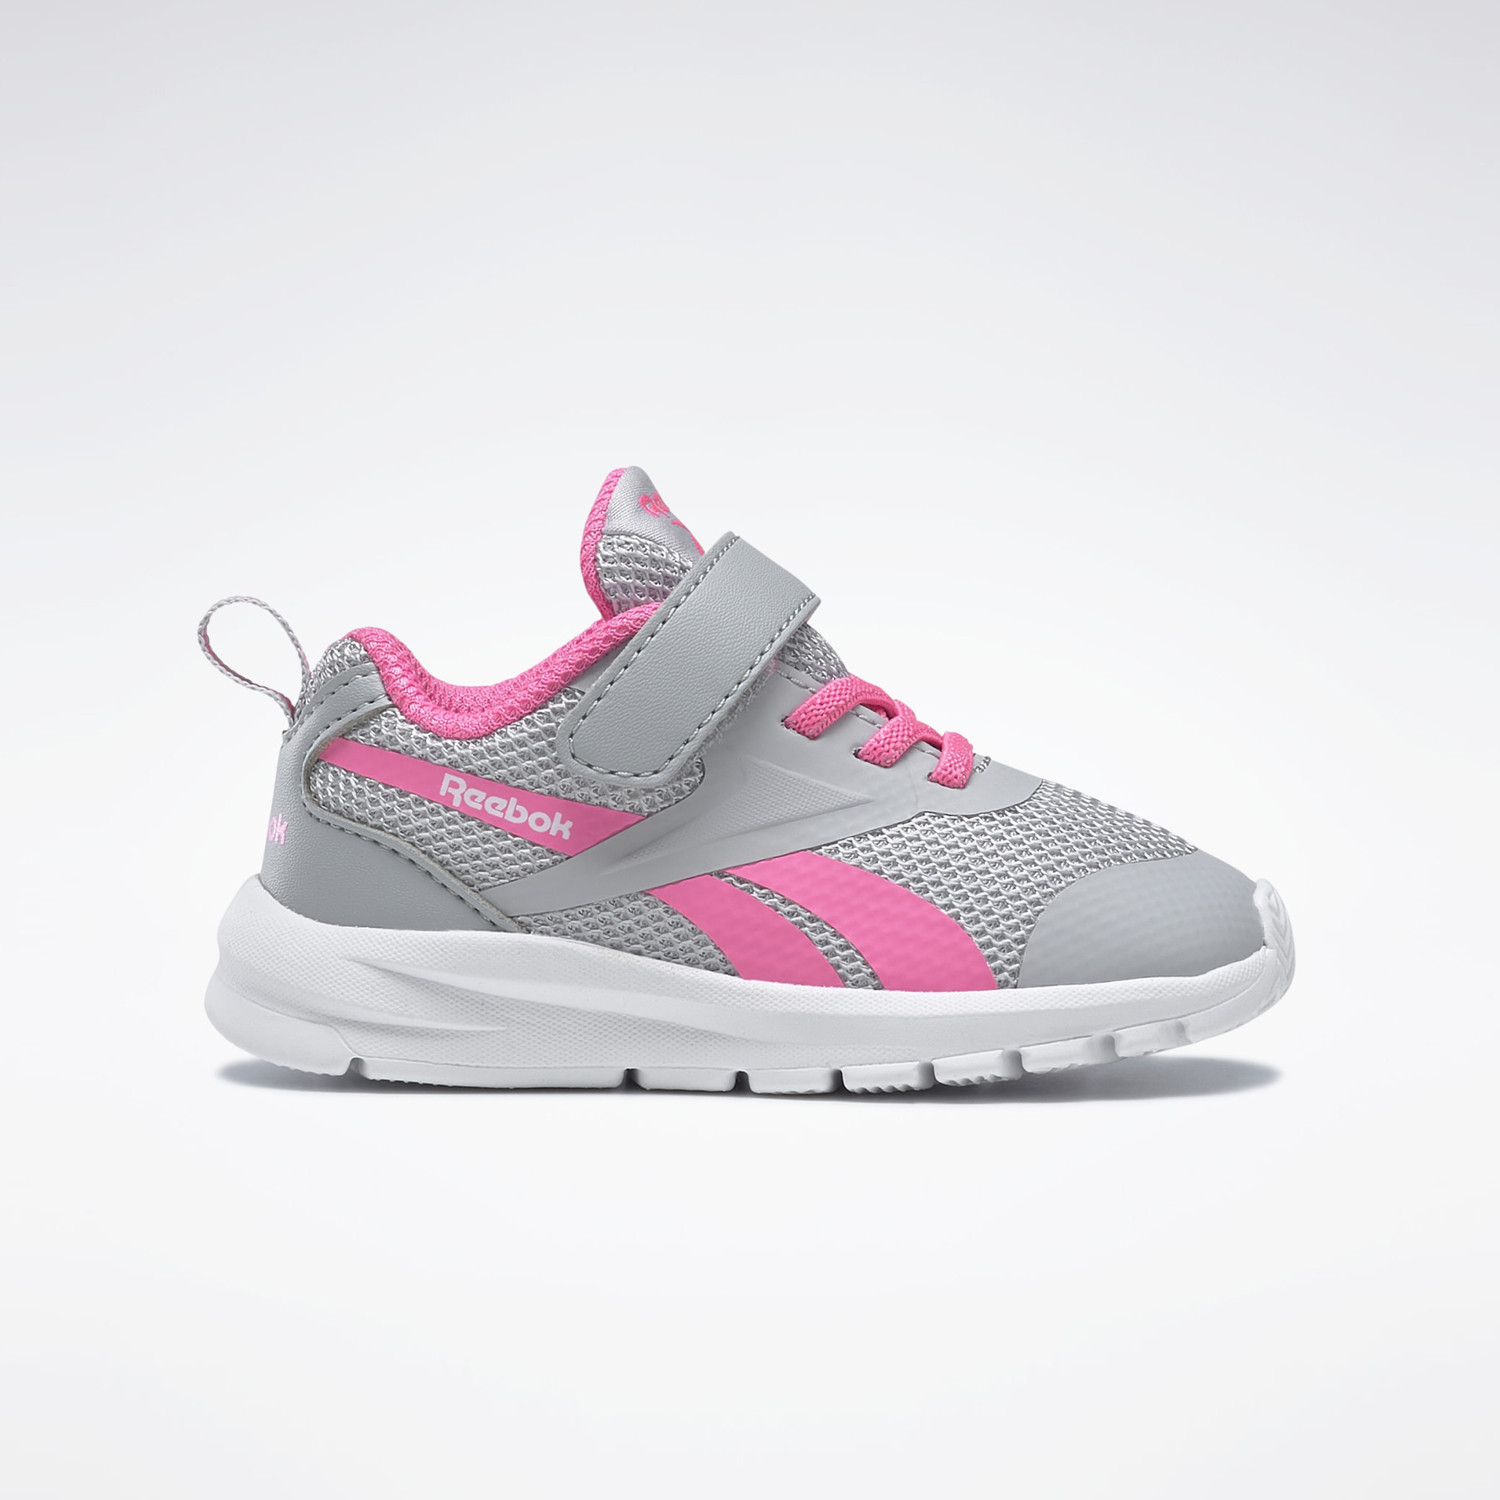 Reebok Sport Rush Runner 3Td Shoes Παιδικά Παπούτσια (9000069166_50212)